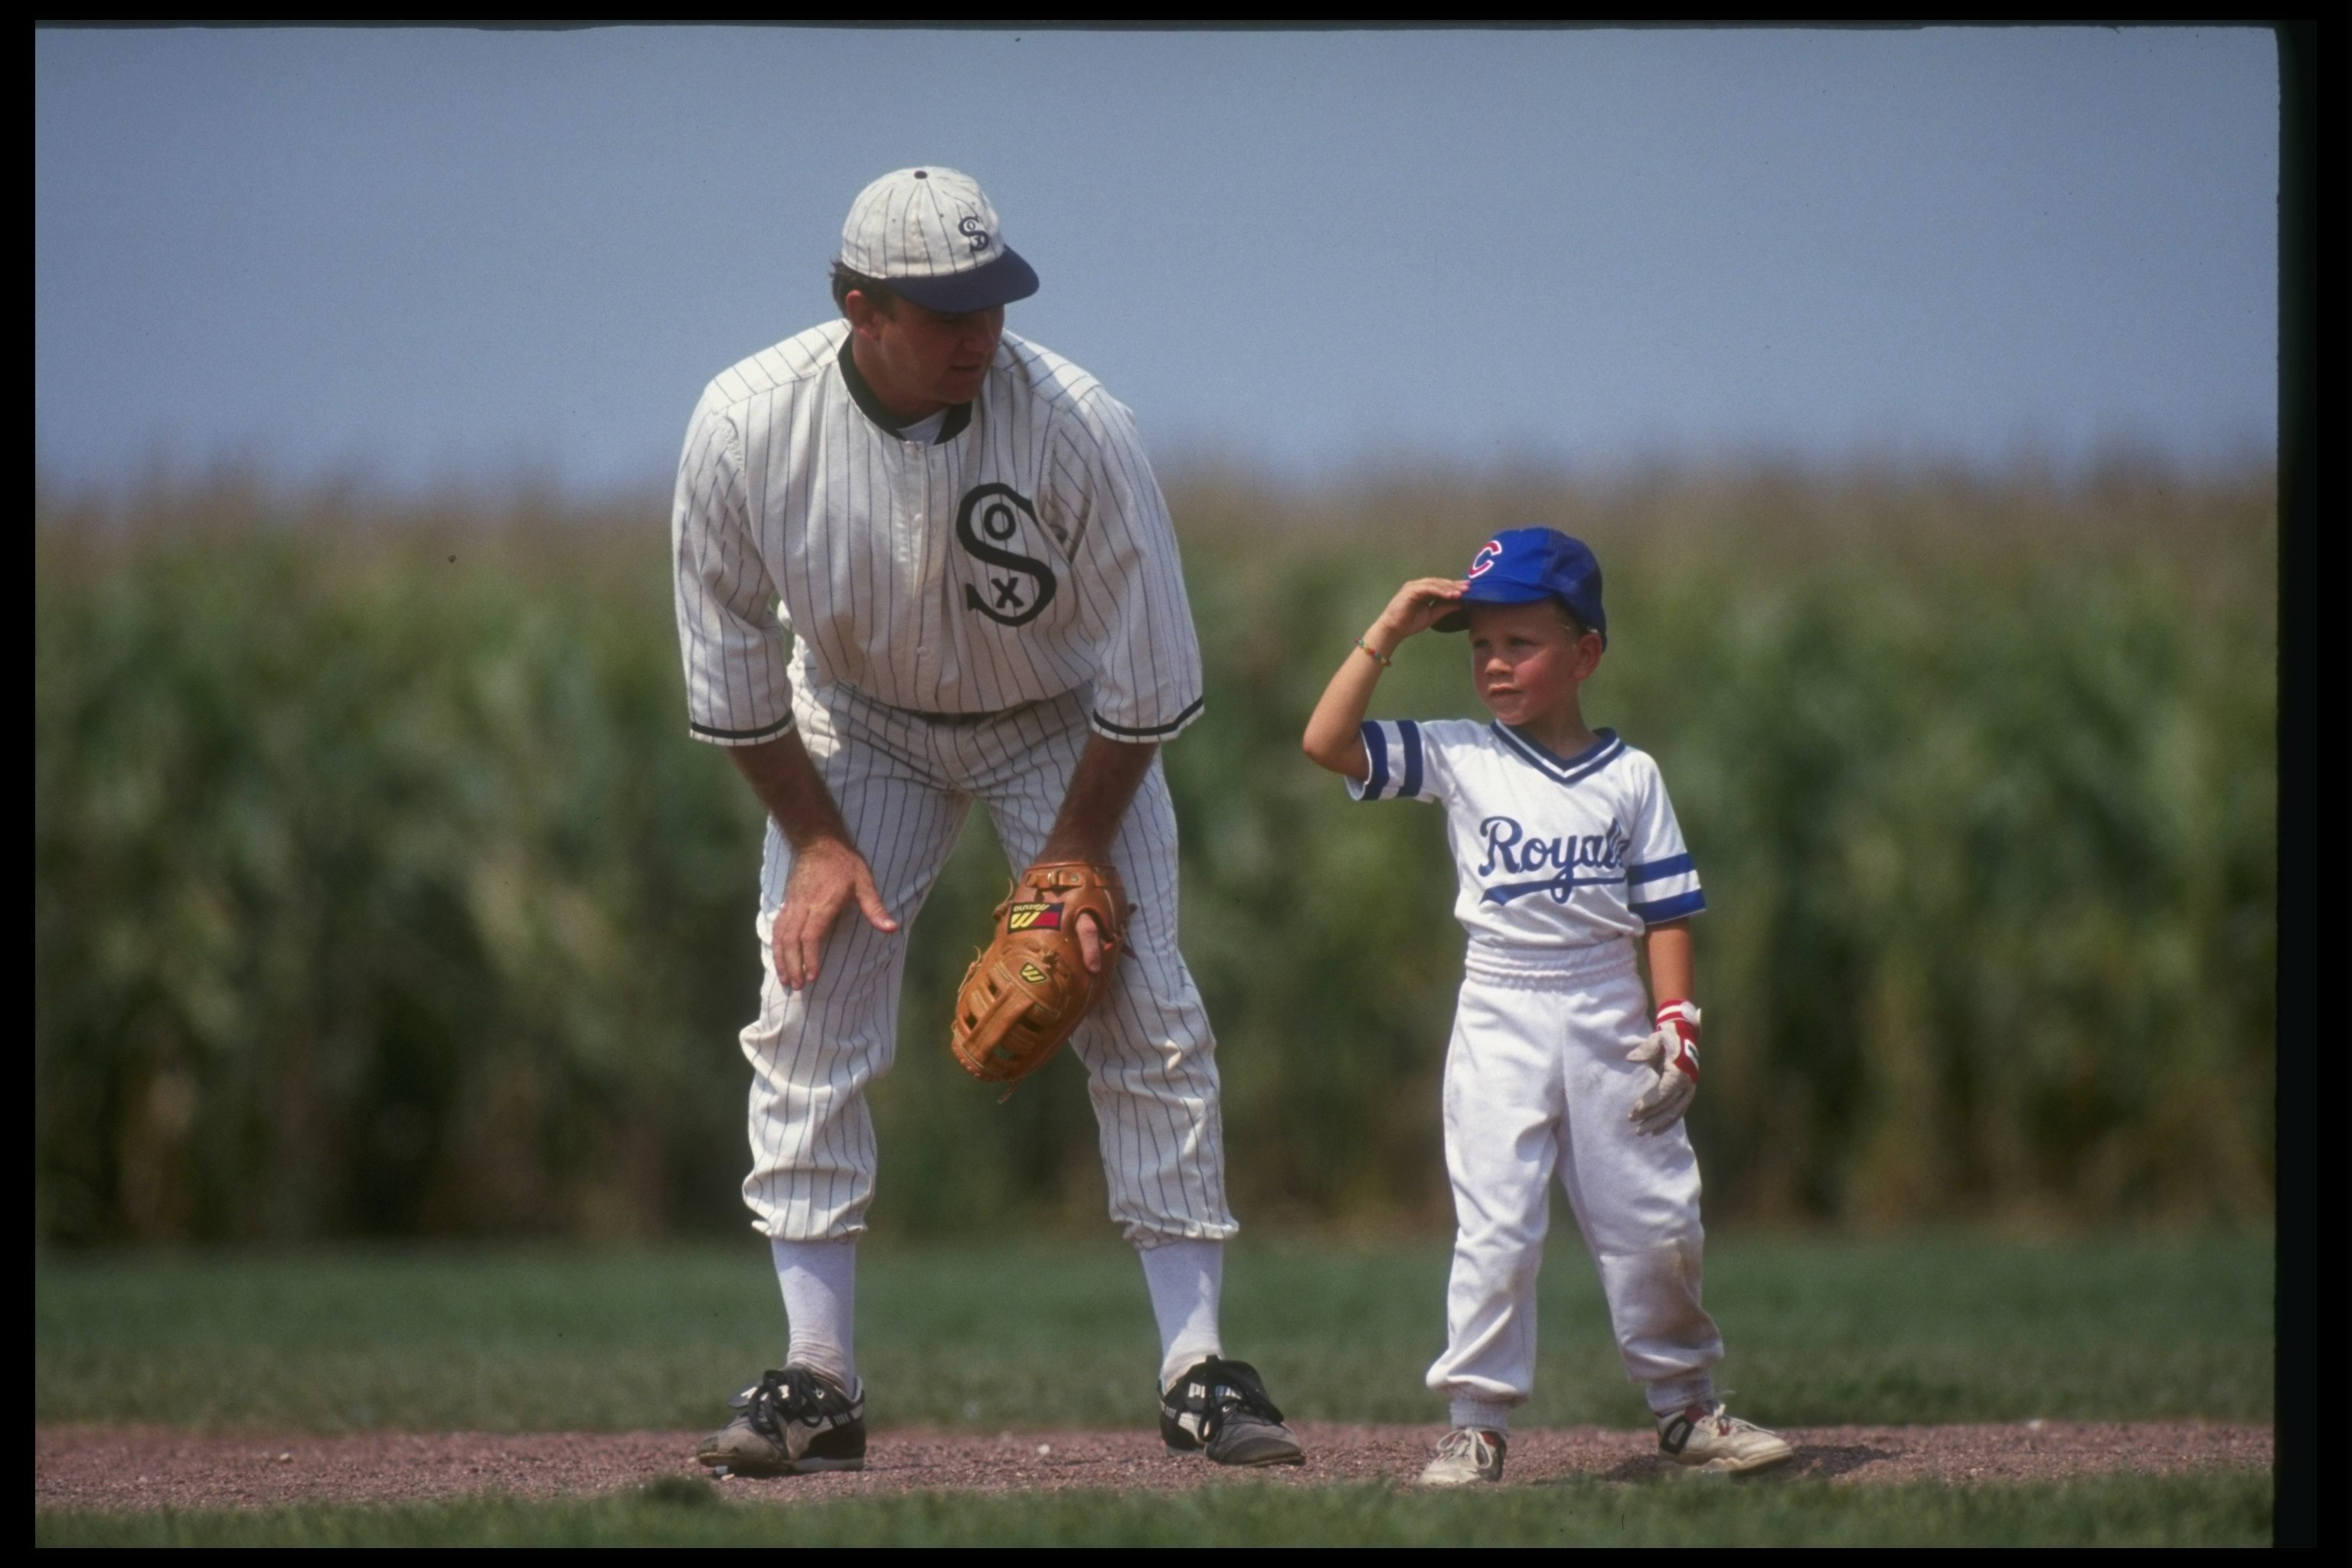 DYERSVILLE, IA - AUGUST 25: A 'ghost player' recreating the role of Chicago White Sox legend Shoeless Joe Jackson plays ball with a young tourist at the baseball field created for the motion picture 'Field of Dreams' on August 25, 1991 in Dyersville, Iowa